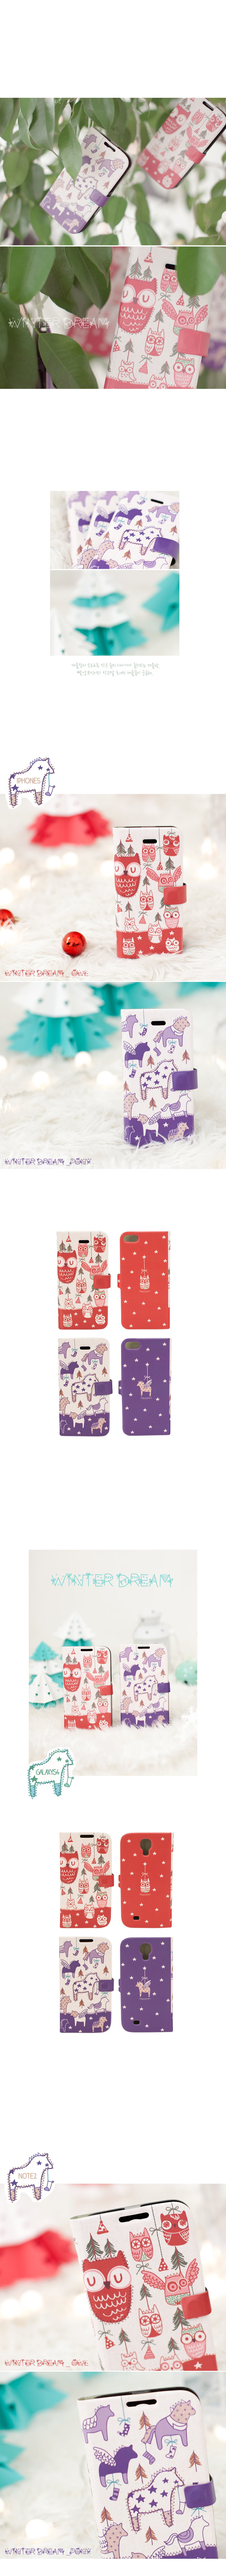 [HAPPYMORI] Flip Cover Case _ Winter Dream(iPhone4_4s,iPhone5_5s,iPhone6_6s)